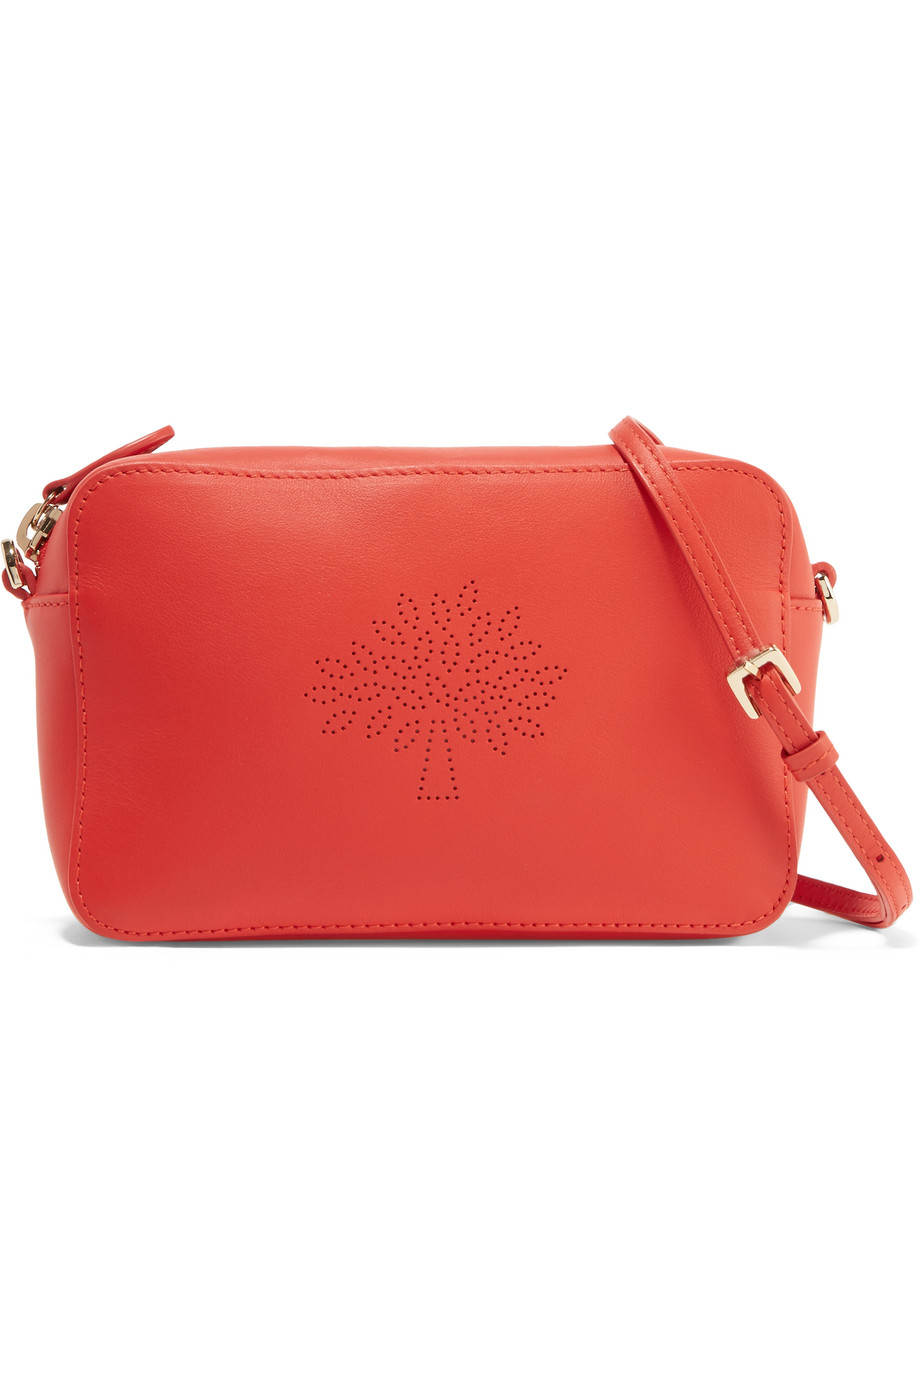 Mulberry Blossom Perforated Leather Shoulder Bag, Red, Women's